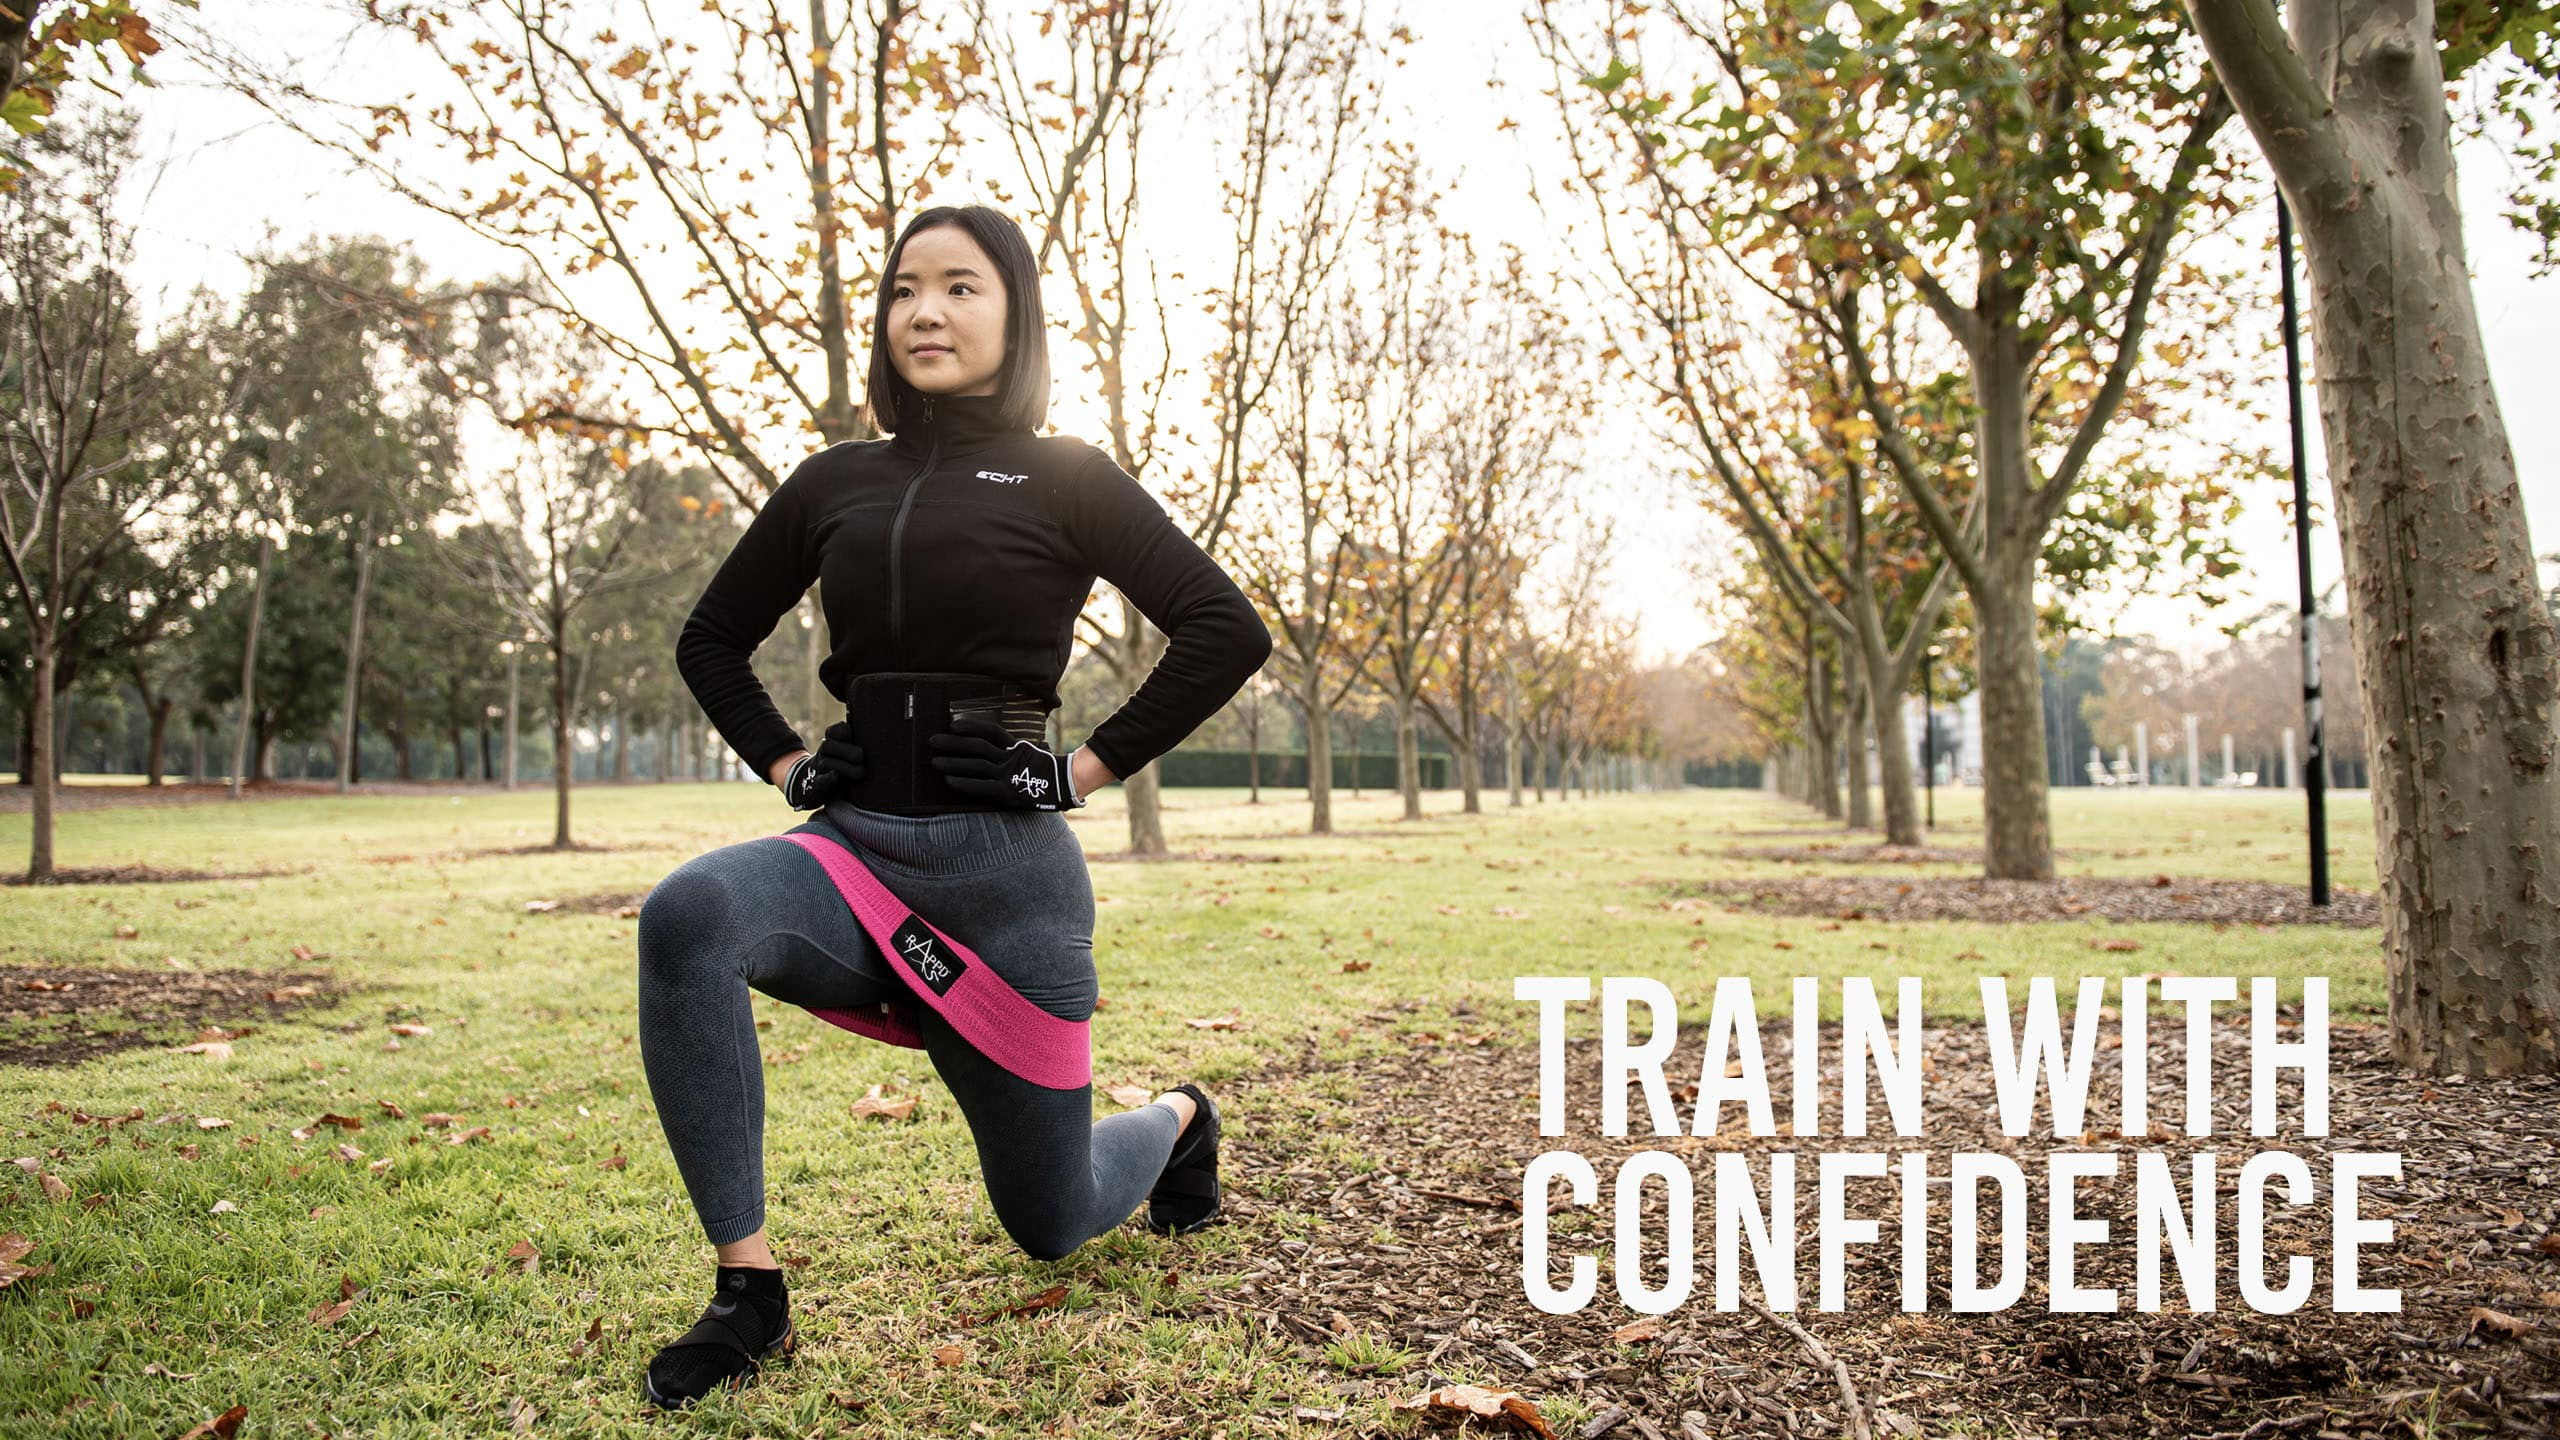 Rappd Train With Confidence banner with woman using resistance bands